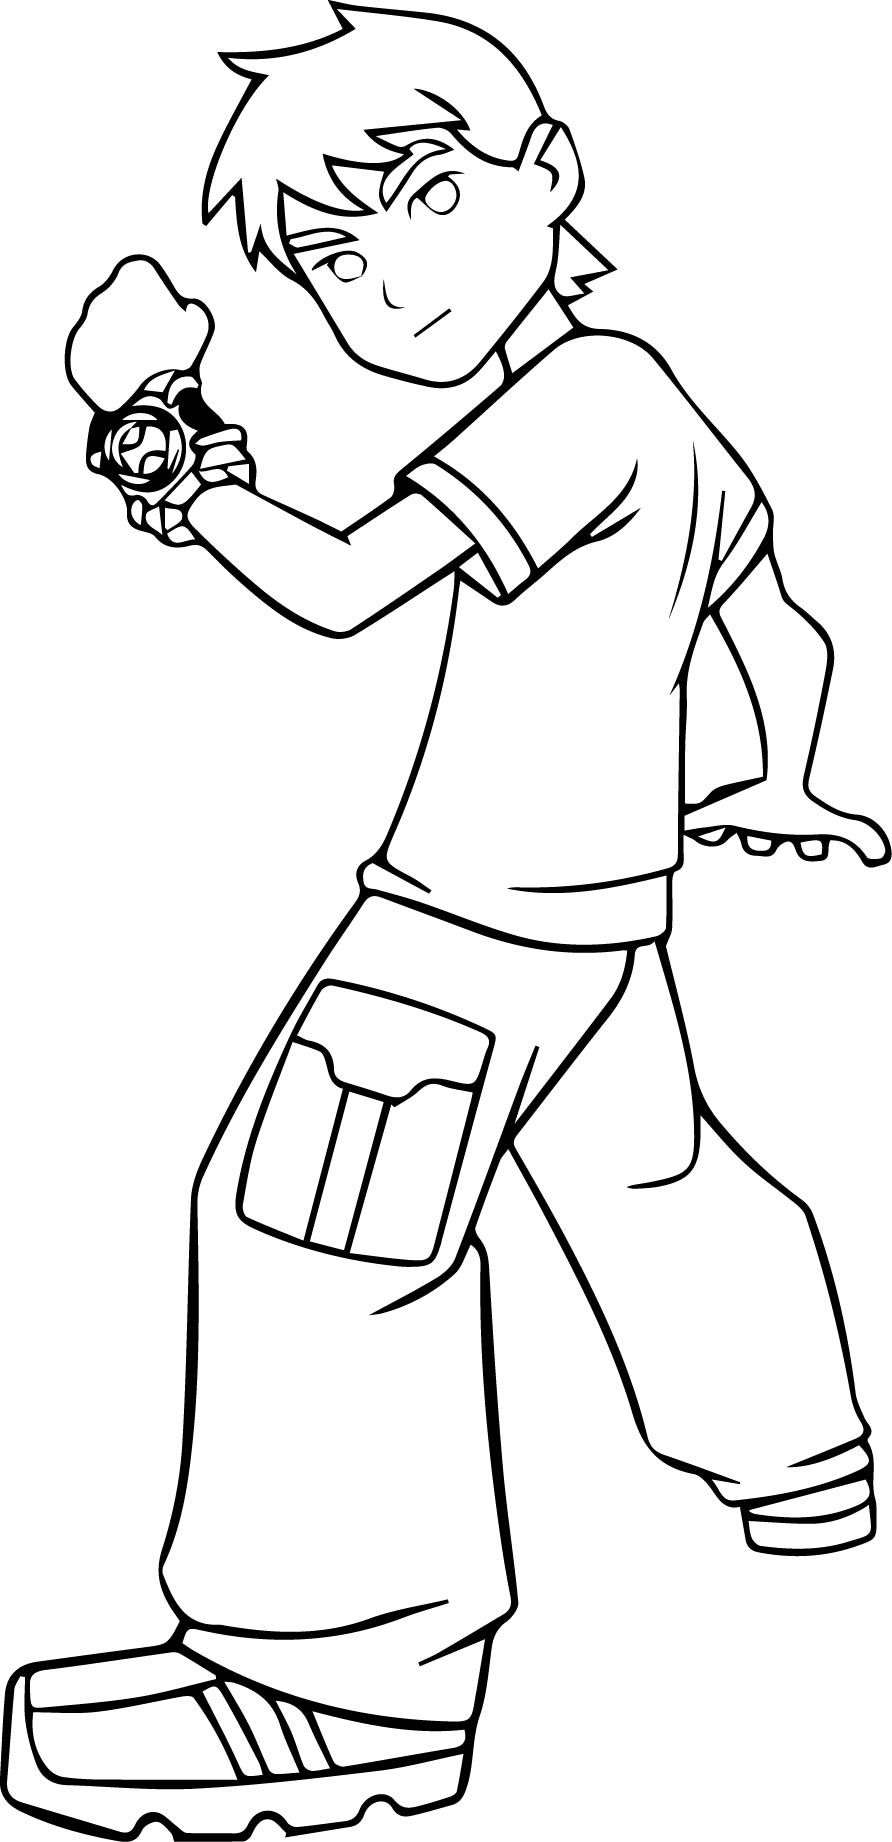 Free Ben 10 Coloring Pages Print 1 Mcoloring Coloring Pages Elsa Coloring Pages Cartoon Coloring Pages